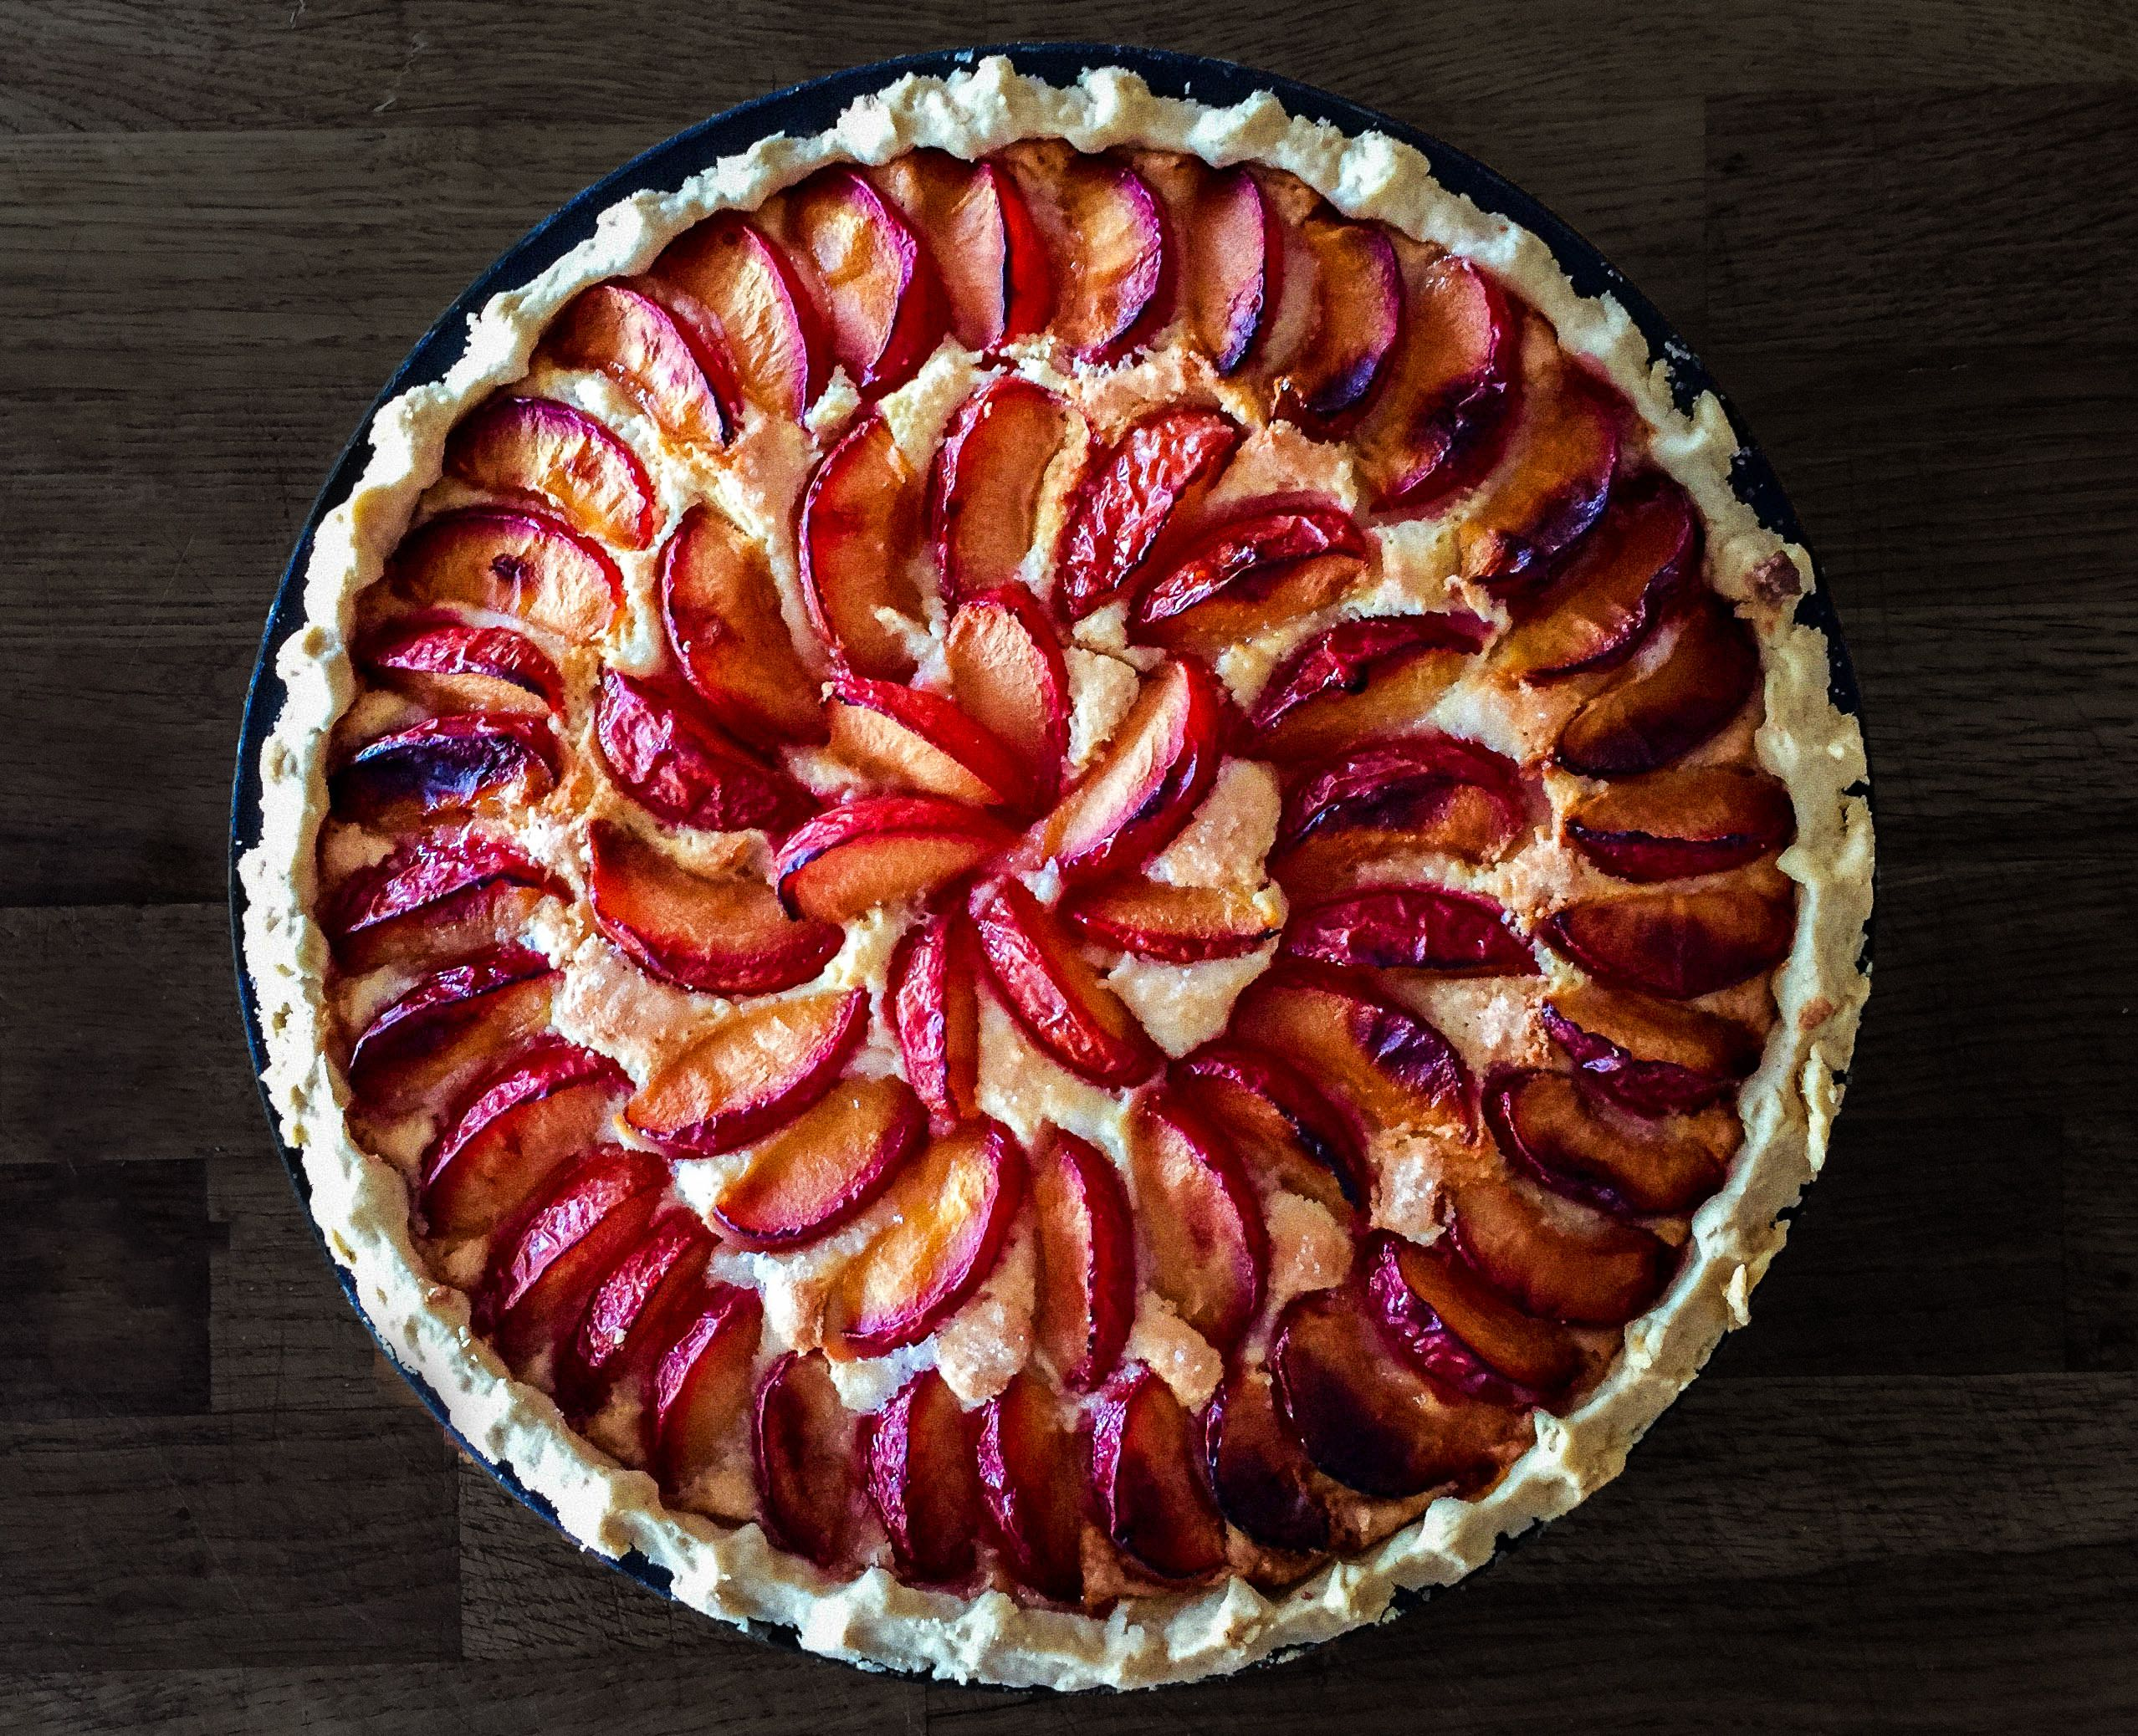 A plum and almond tart topped with sliced plums